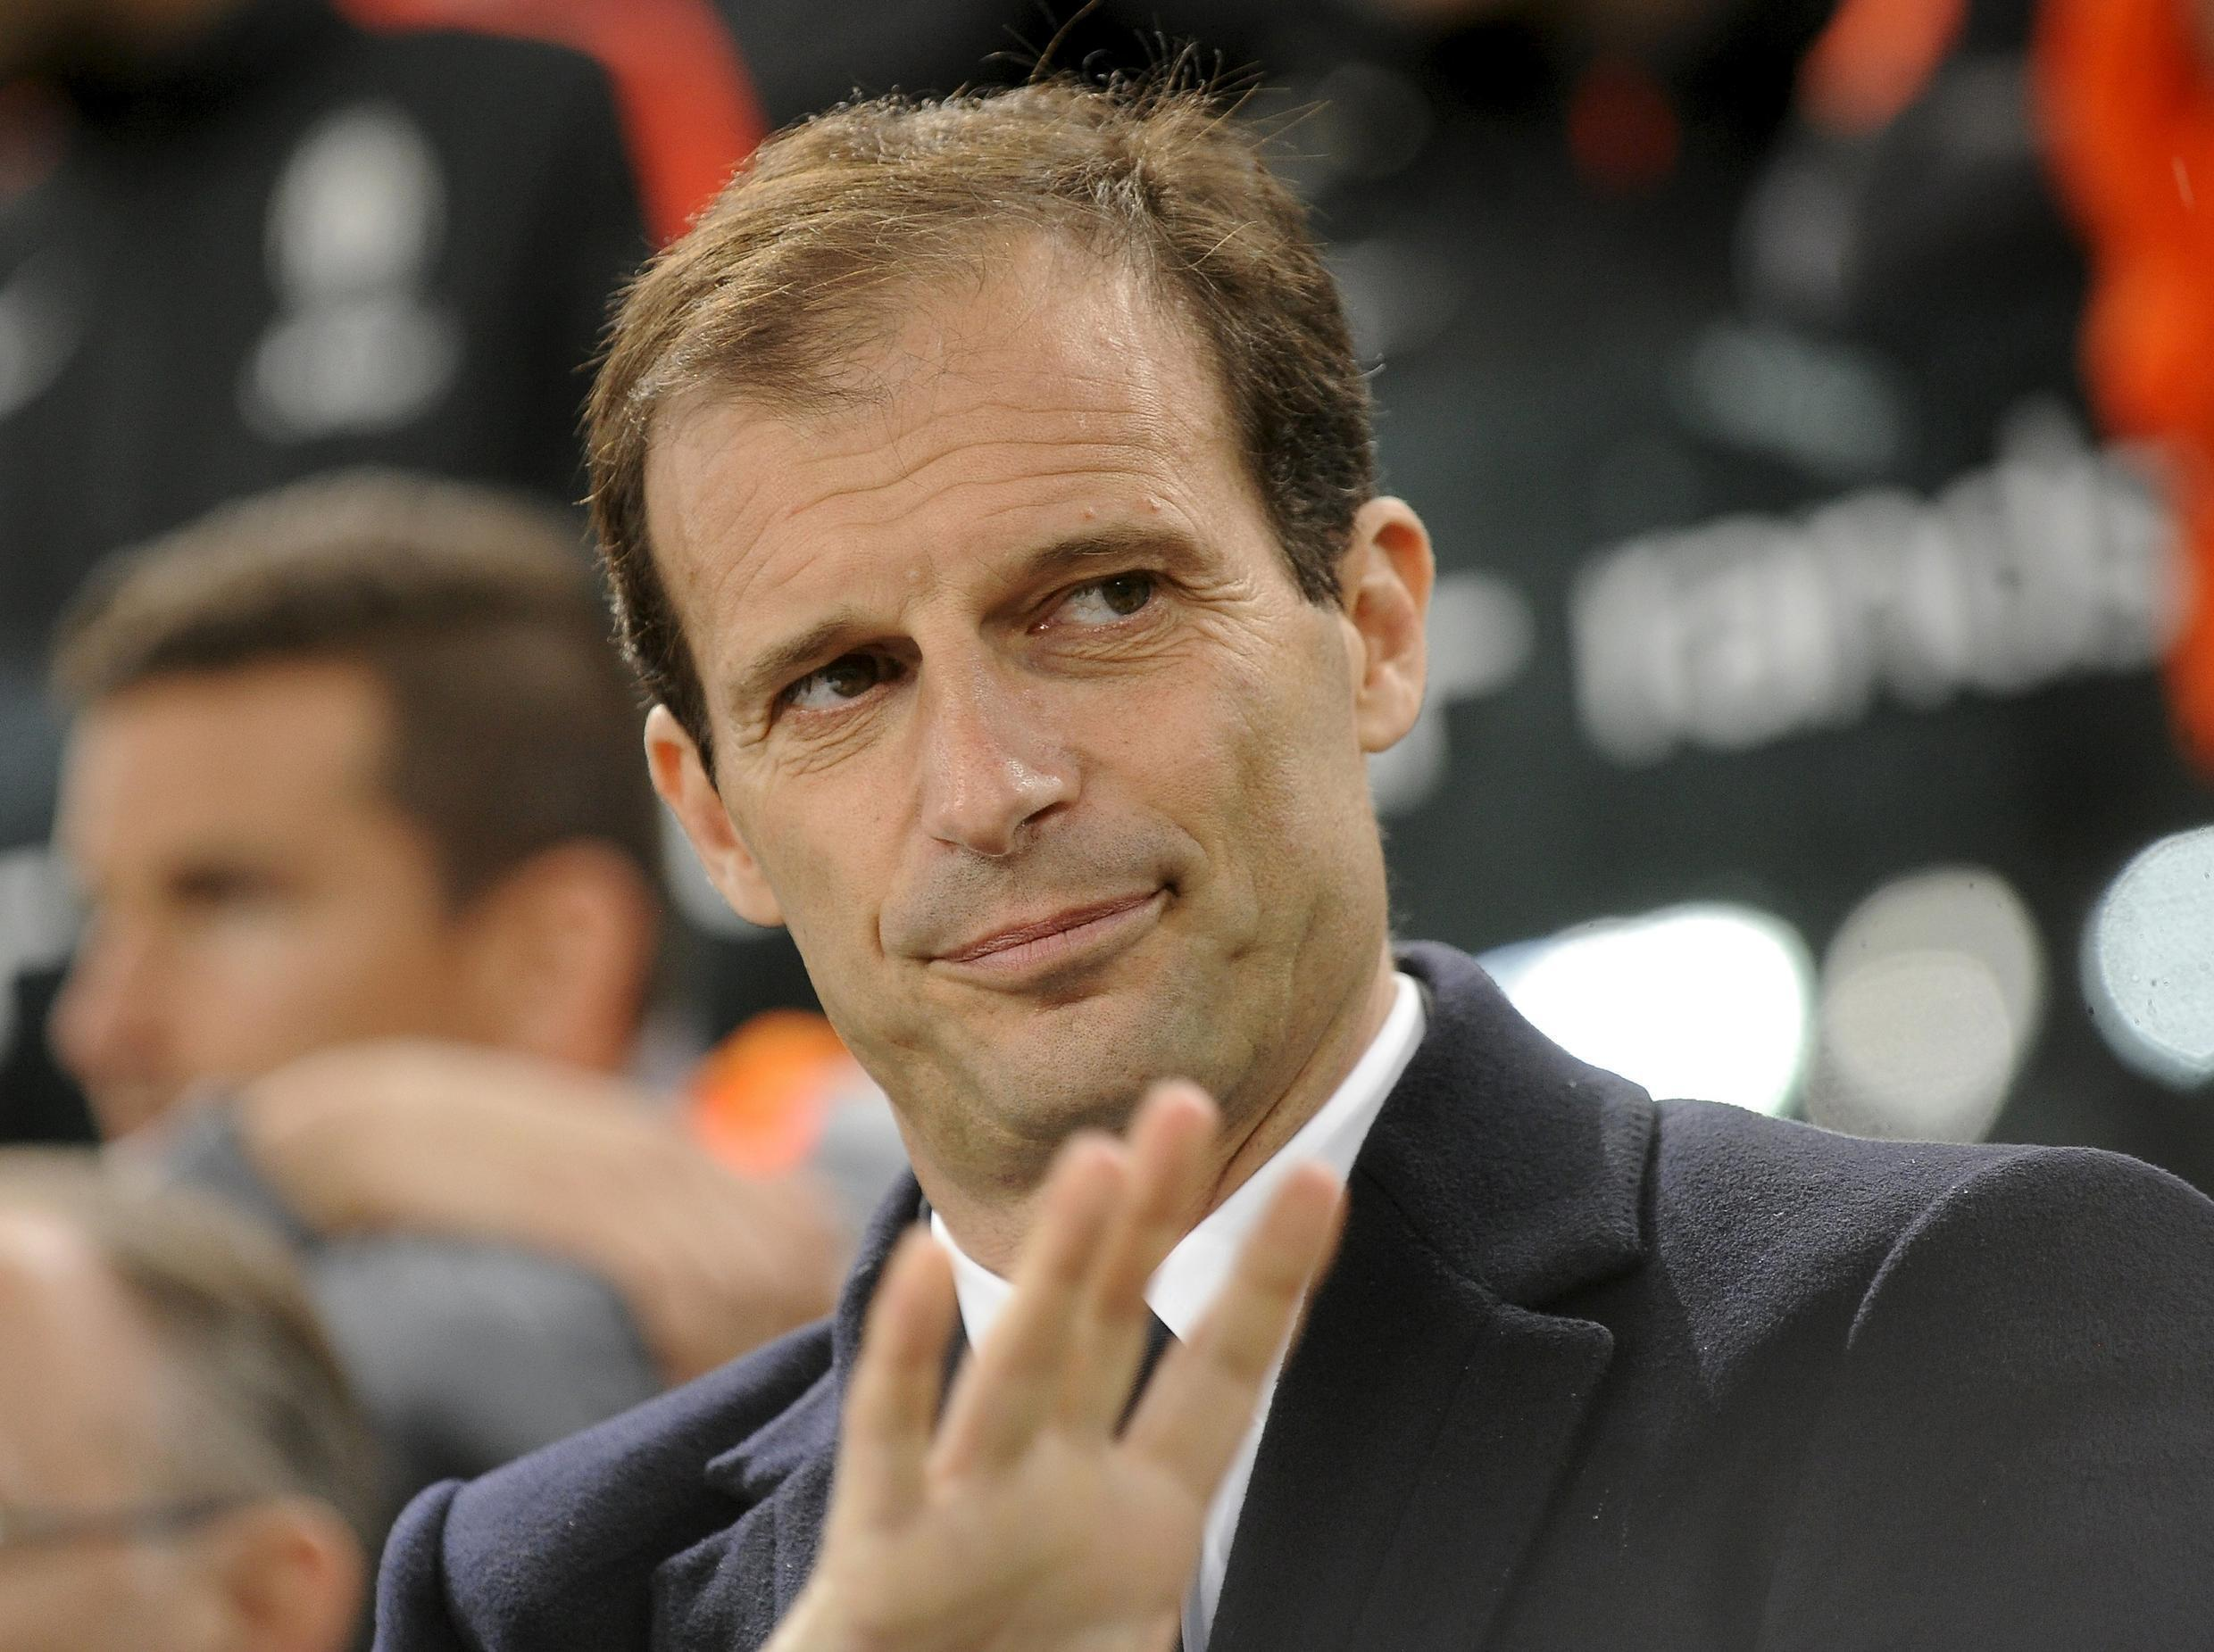 Juventus coach Massimo Allegri has led the side to the cusp of a fourth consecutive Serie A title